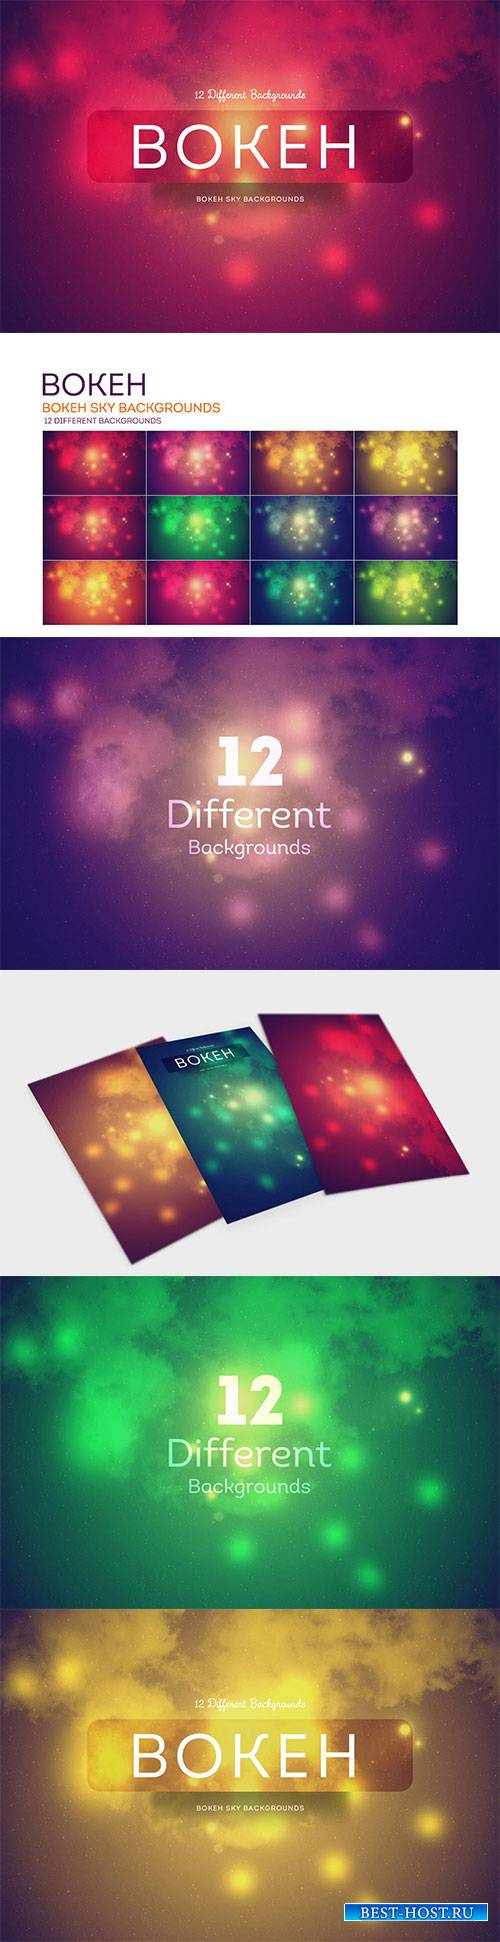 Bokeh SKY Backgrounds